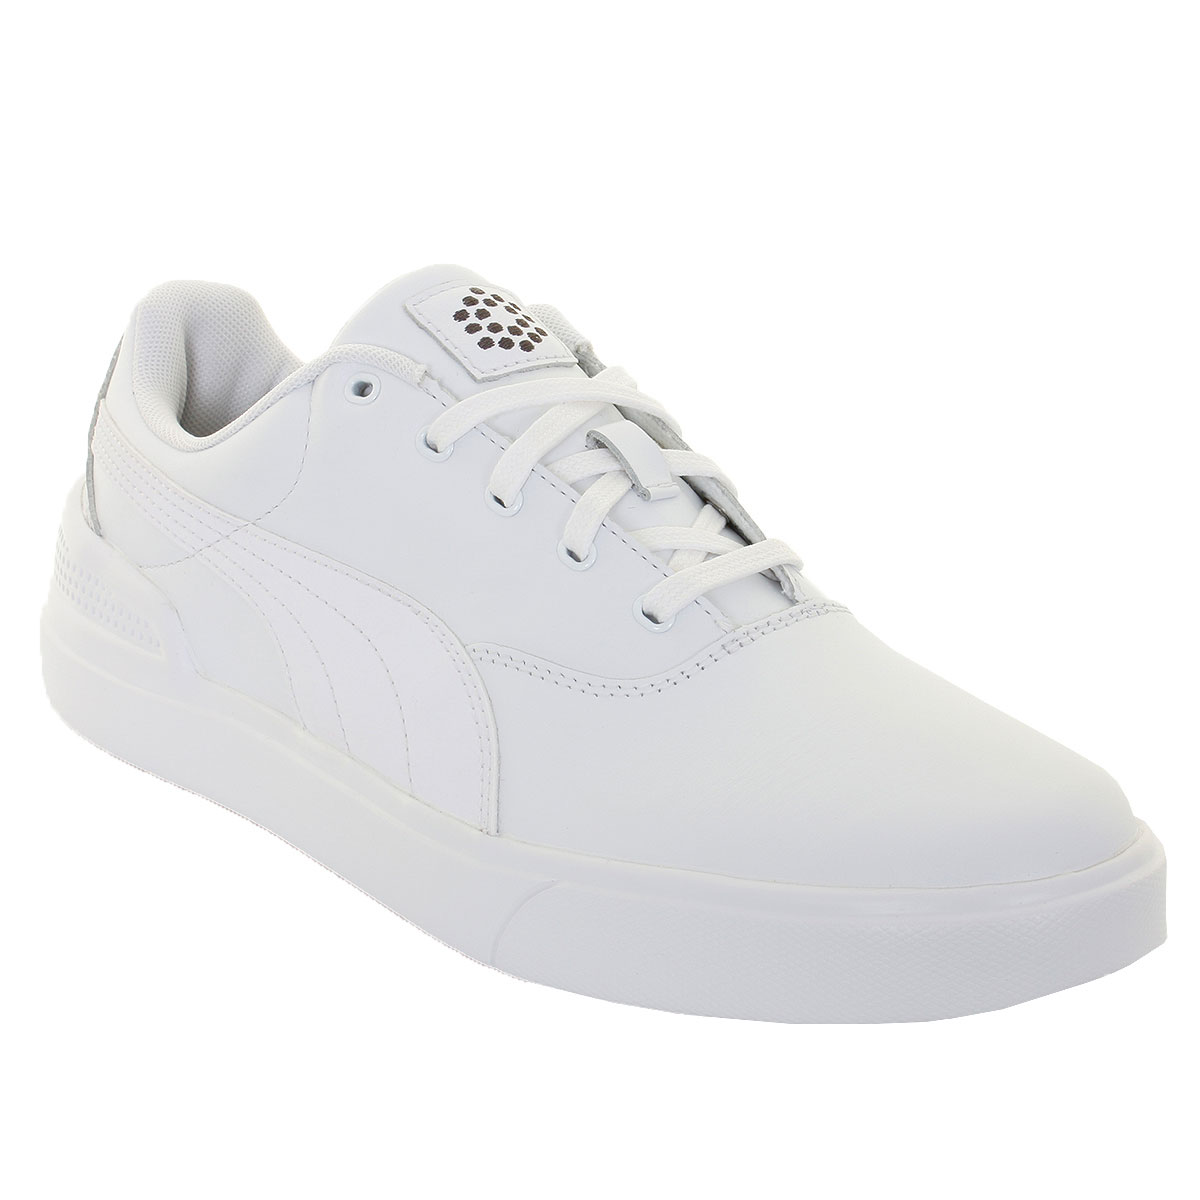 PUMA Mens Monolite V2 Spikeless Golf Shoes Trainers White 42 5  b1021c002